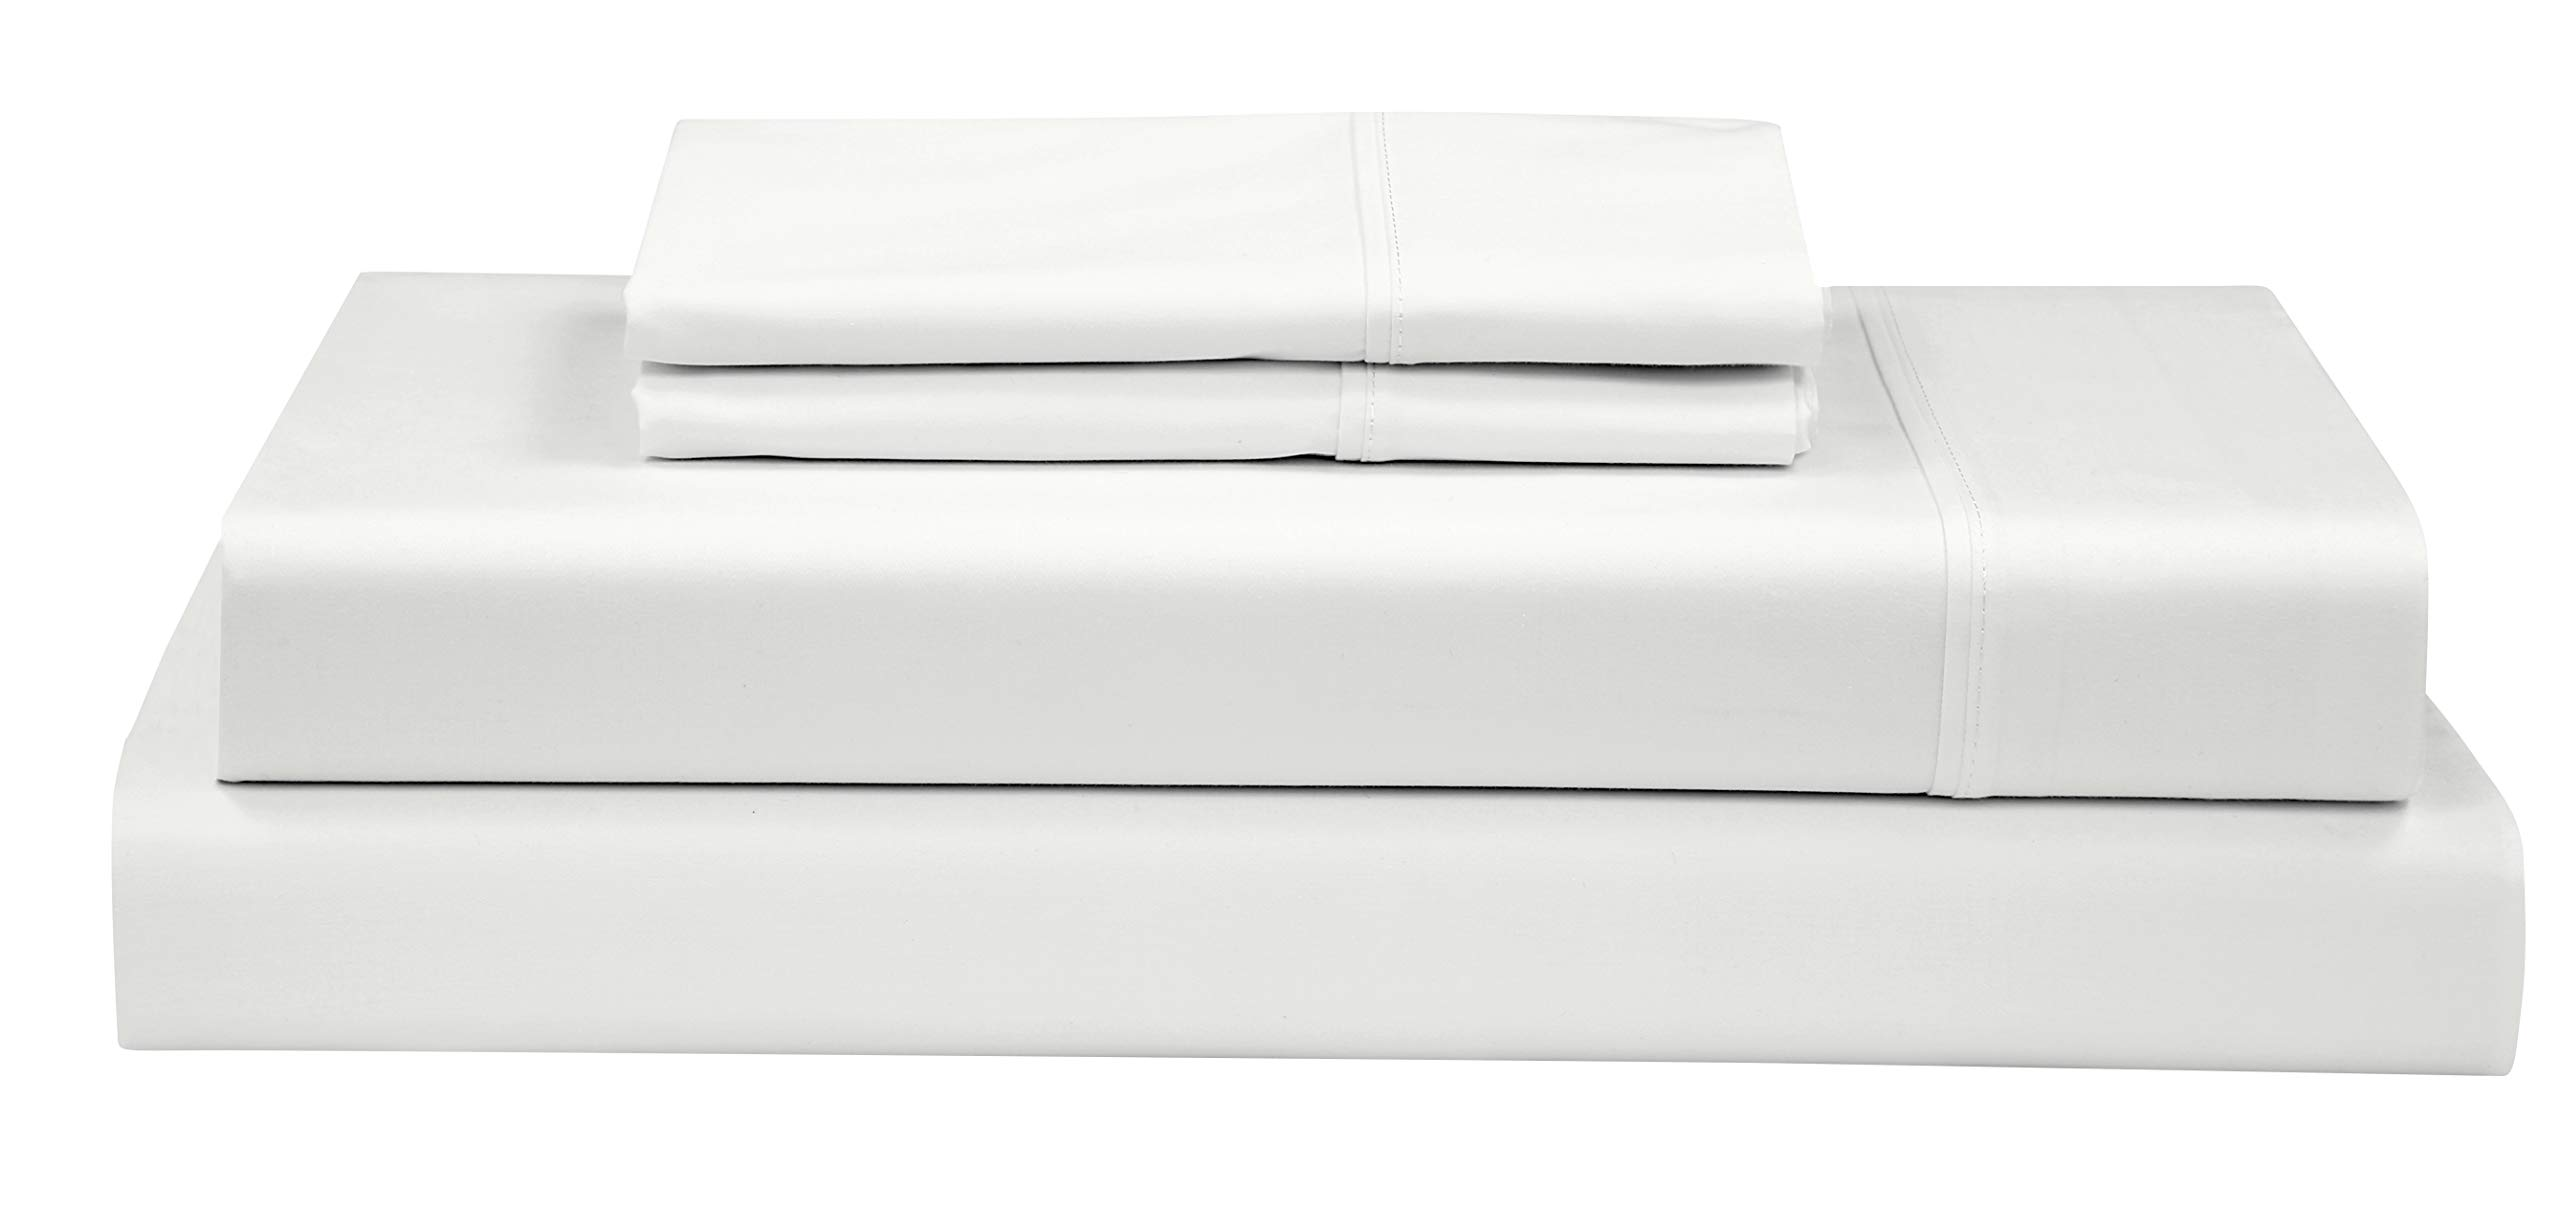 Boston Linen Co. 500 Thread Count, 100% Cotton Sheet Set - Extra Soft, Luxury Finish - Smooth and Silky Sateen Weave Long-Staple Combed Cotton - 4 Piece Set - King, White